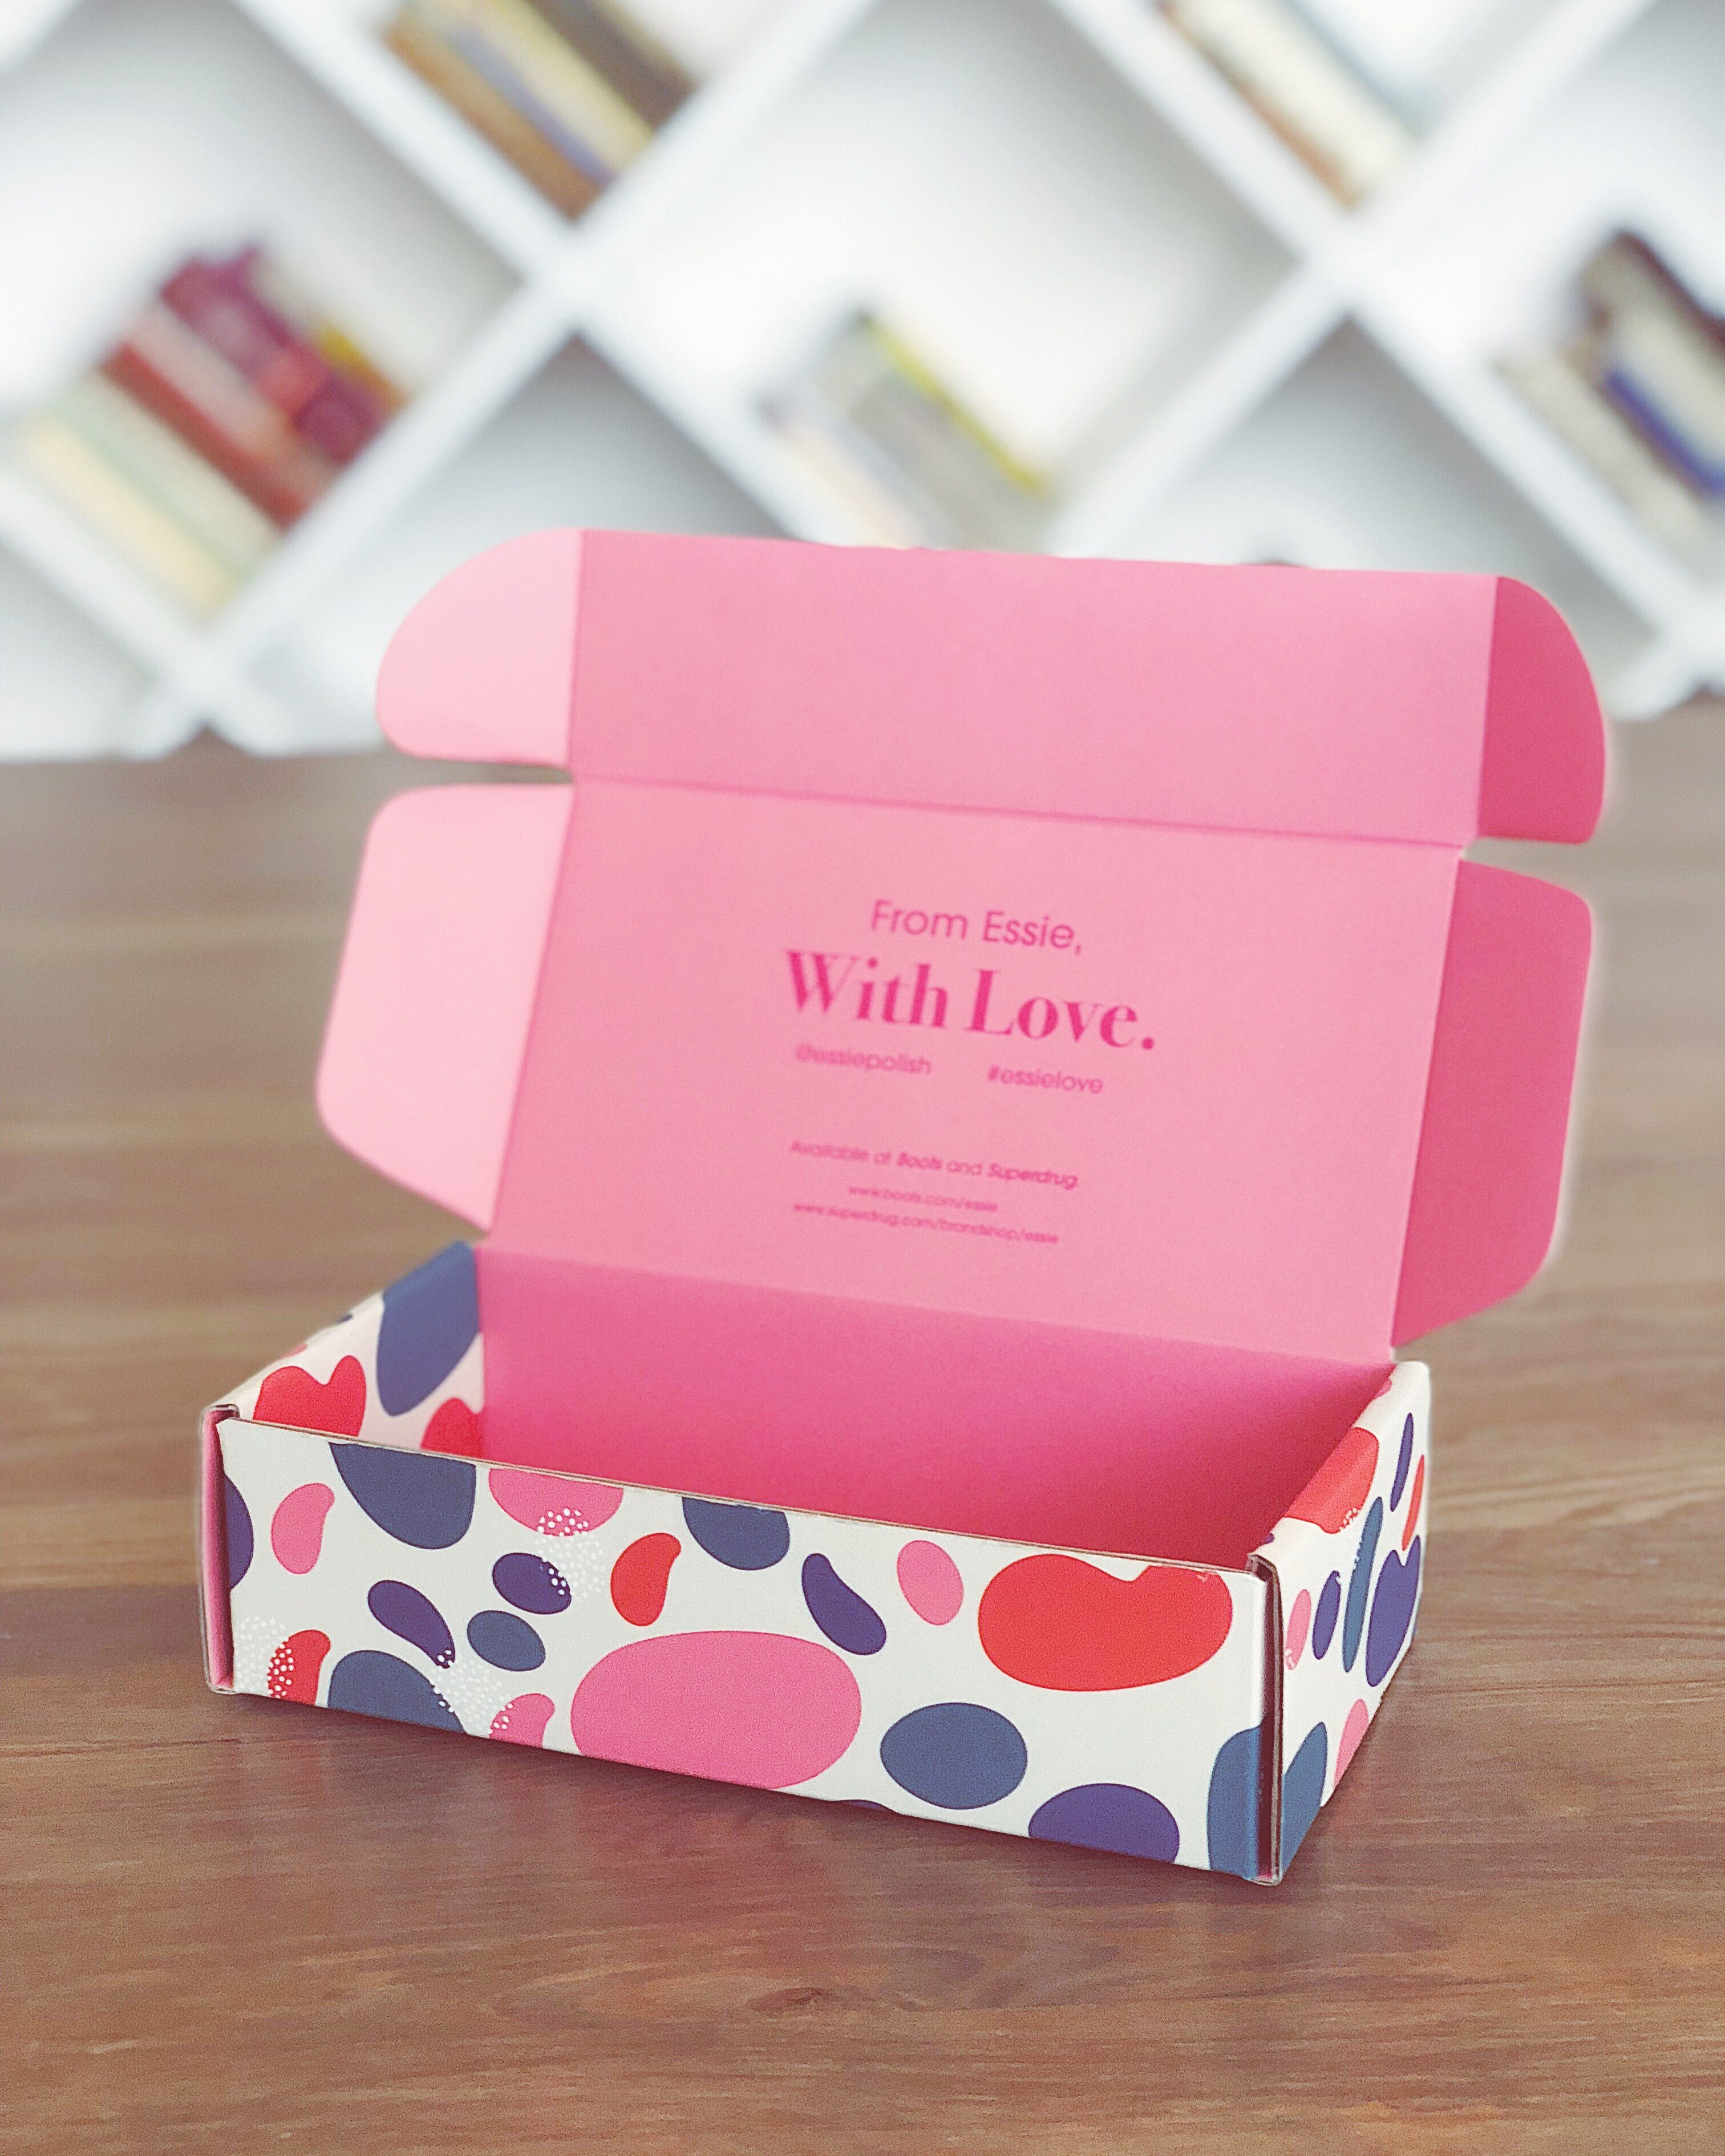 Make boxes - not war. This is a Double-Sided Mailer Box from Packhelp. Made from recycled-cardboard, they create an outstanding unboxing experience to steal your customer's hearts. Get yours today.  #packaging #art #boxes #cardboard #withlove #design #pink #artsy